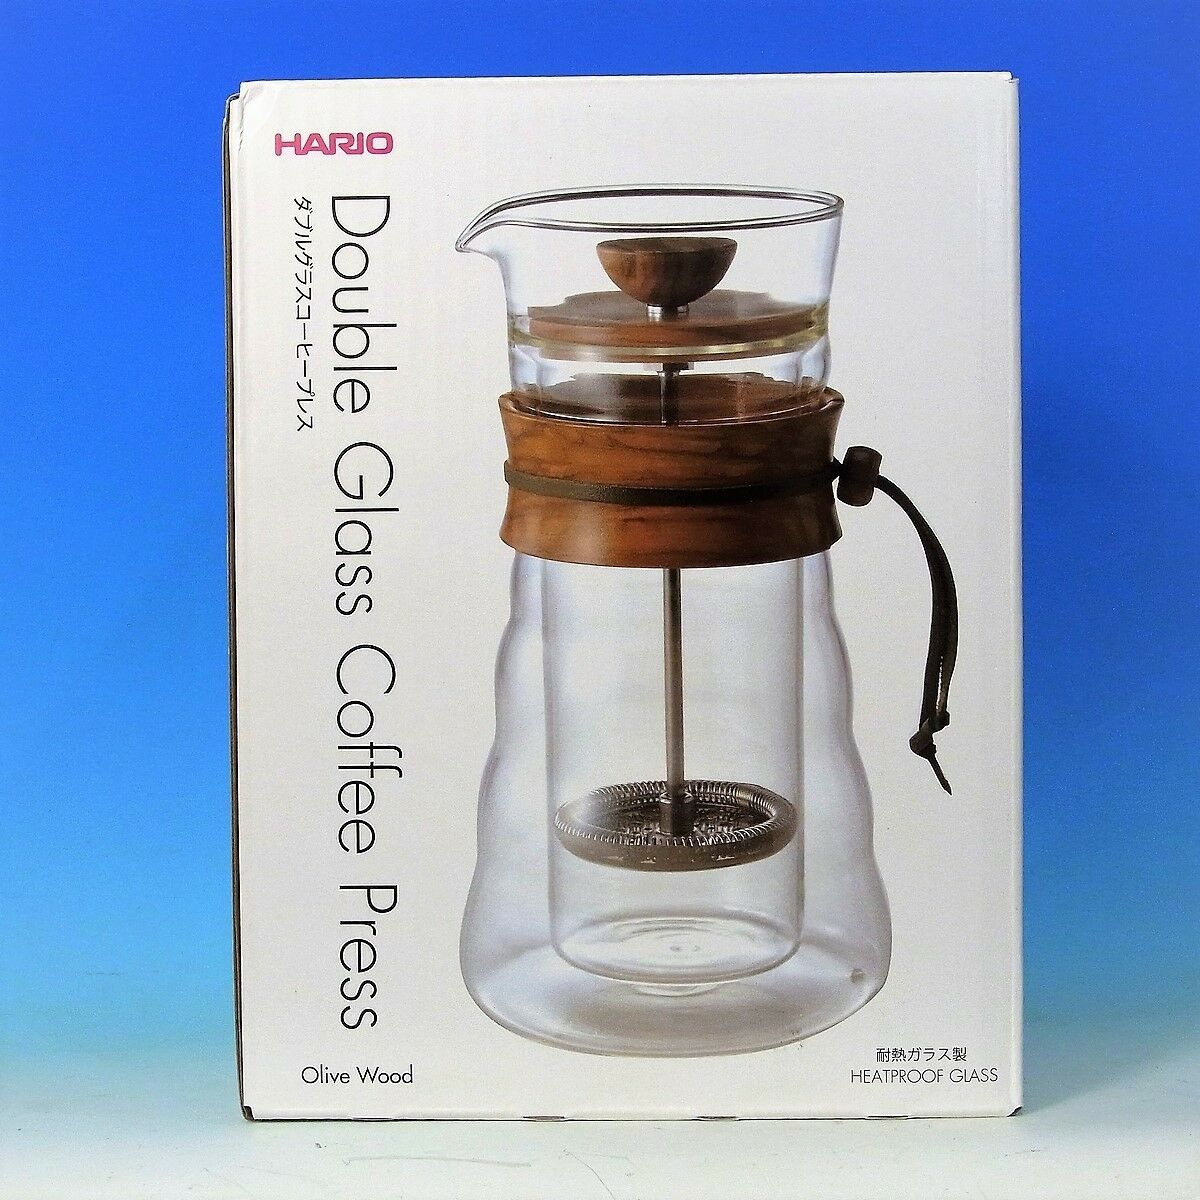 Hario Dgc 40 Ov Double Wall Glass Coffee Press Clear Ebay V60 Stailess Drip Scale Vstm 2000hsv